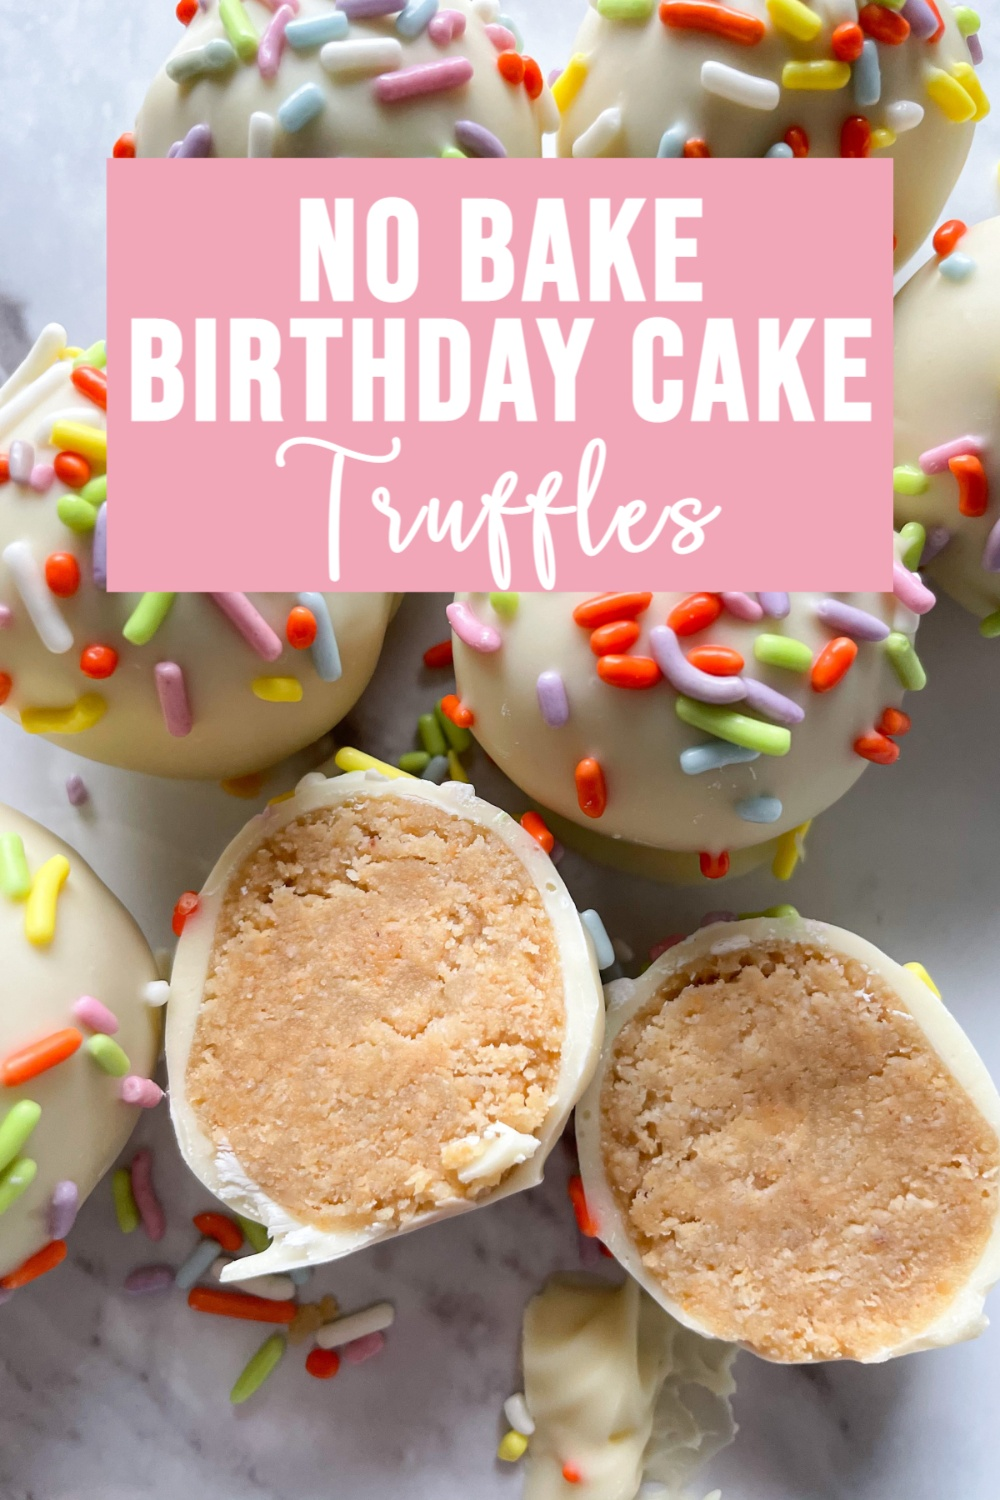 No Bake Birthday Cake Truffles on Marble Background and Text Overlay